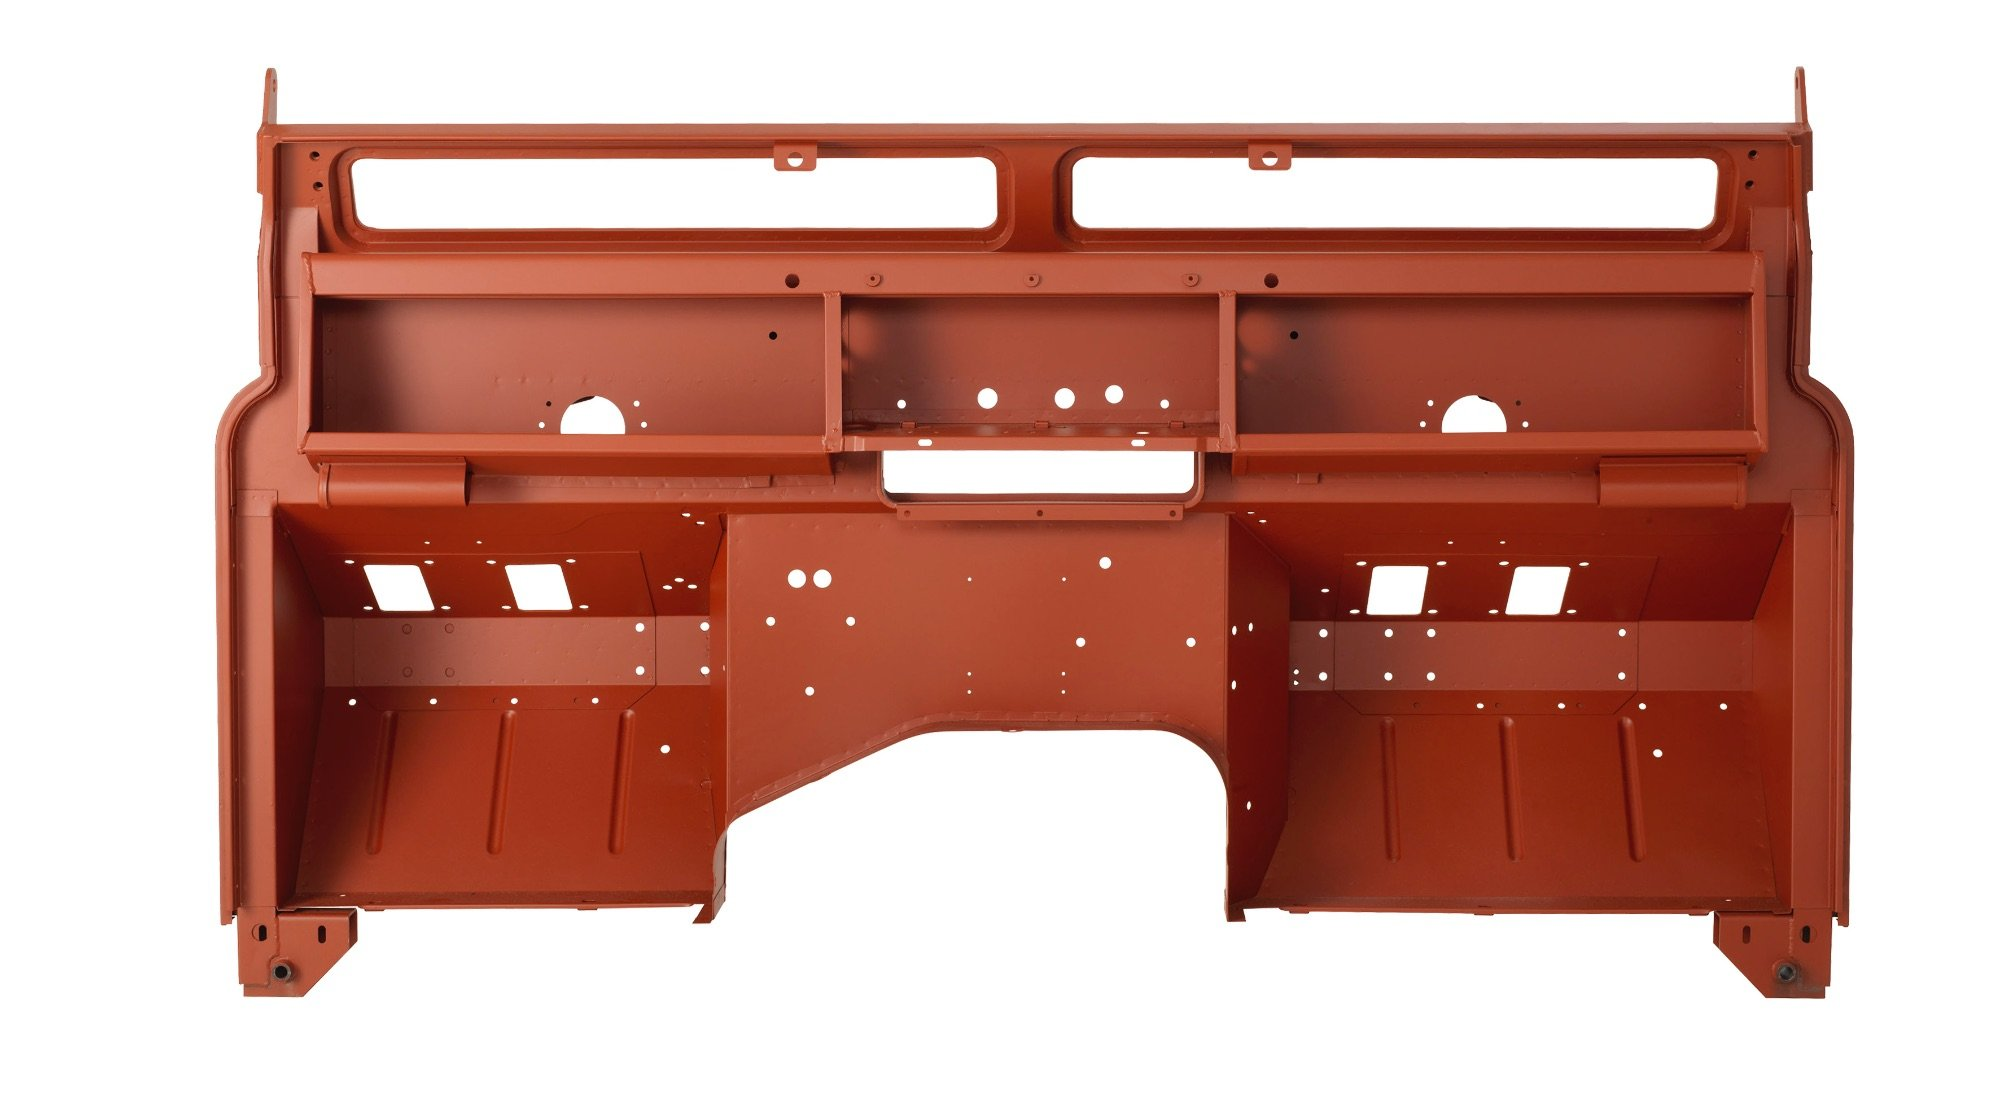 Pegasus Parts - Red Oxide - BH S2a Type 4 - Cab Side View - 110418 v2